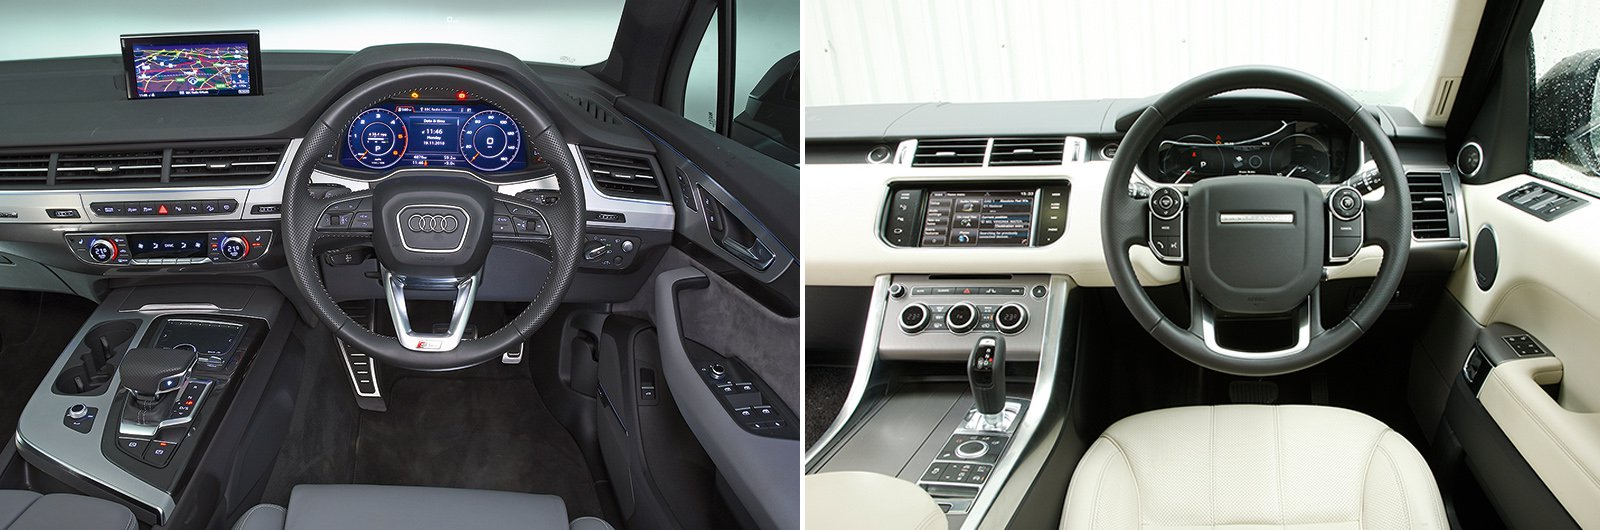 New Audi Q7 vs used Range Rover Sport – interior & equipment